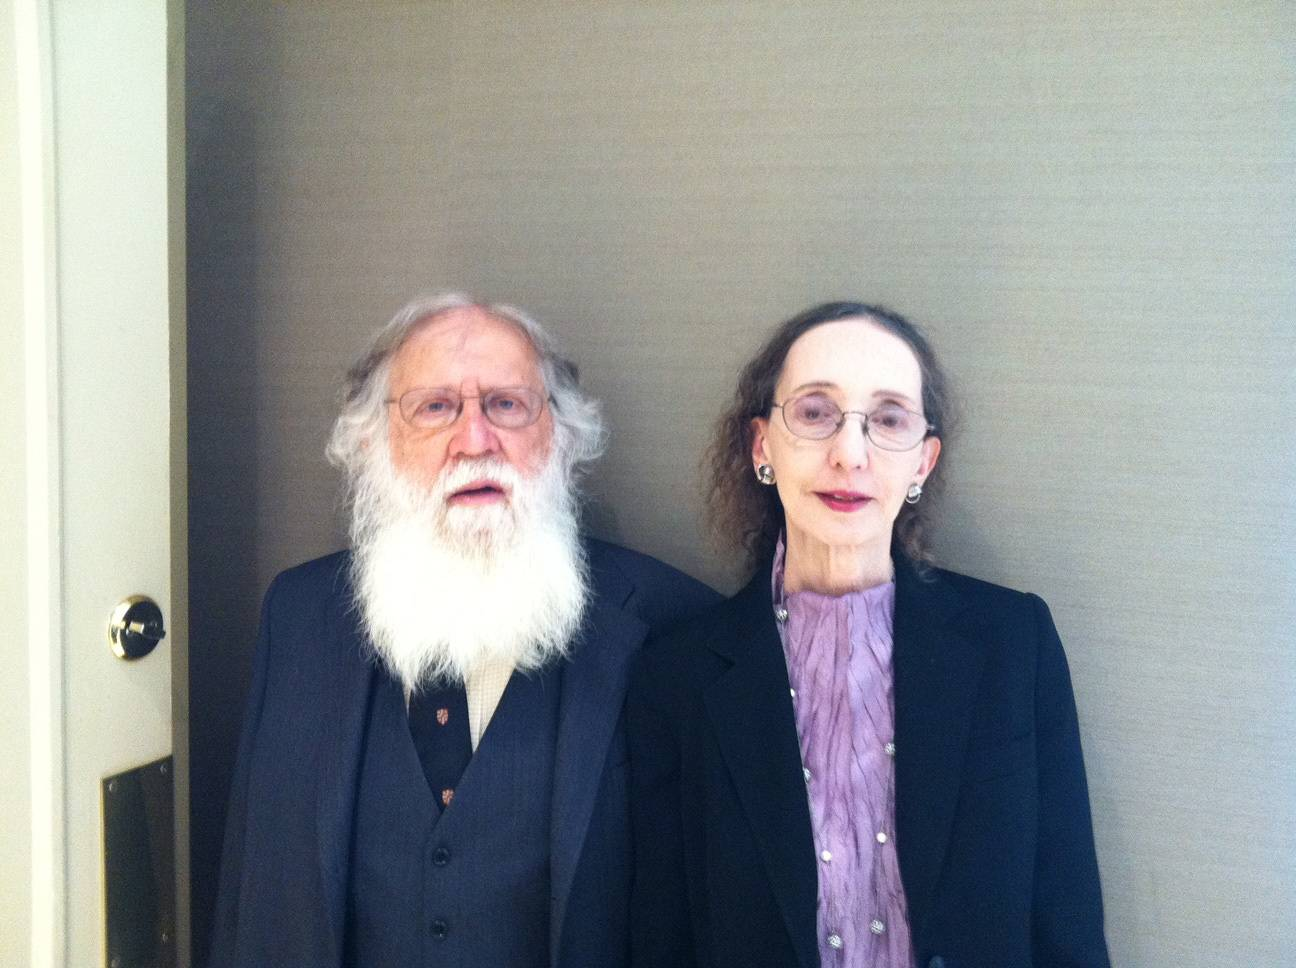 Charlie Gross and Joyce Carol Oates